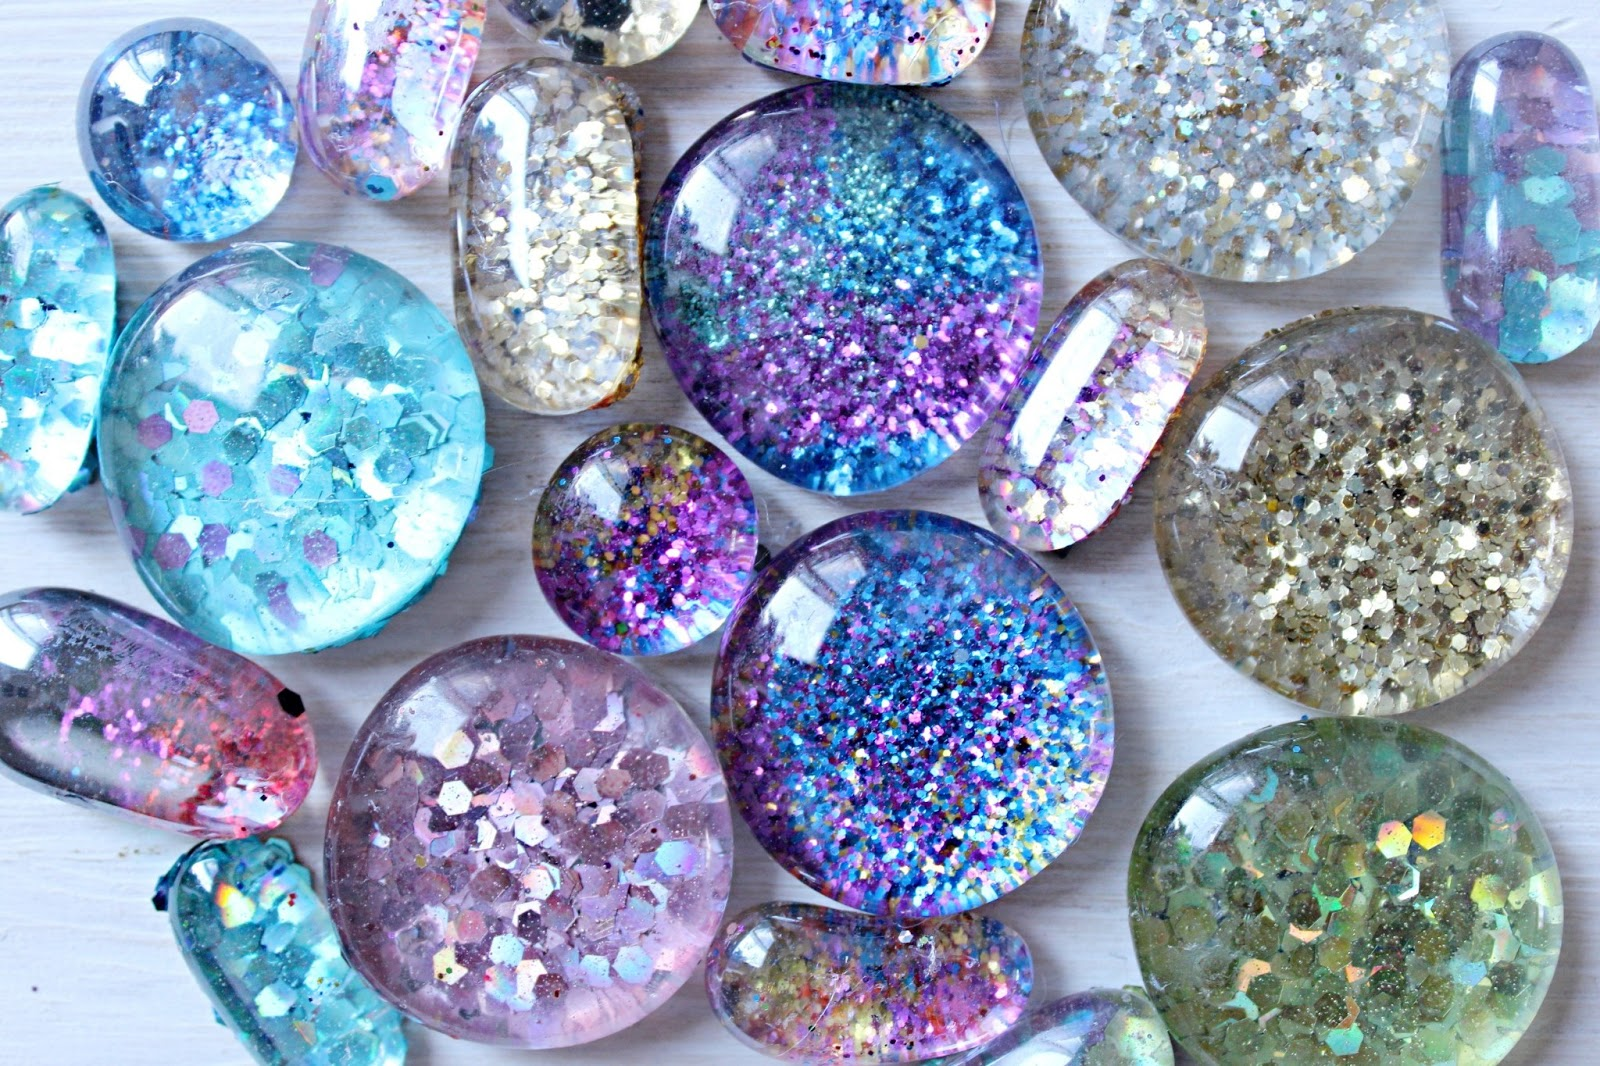 Theresa joy 365 days of pinterest day 15 diy glitter for Glass jewels for crafts